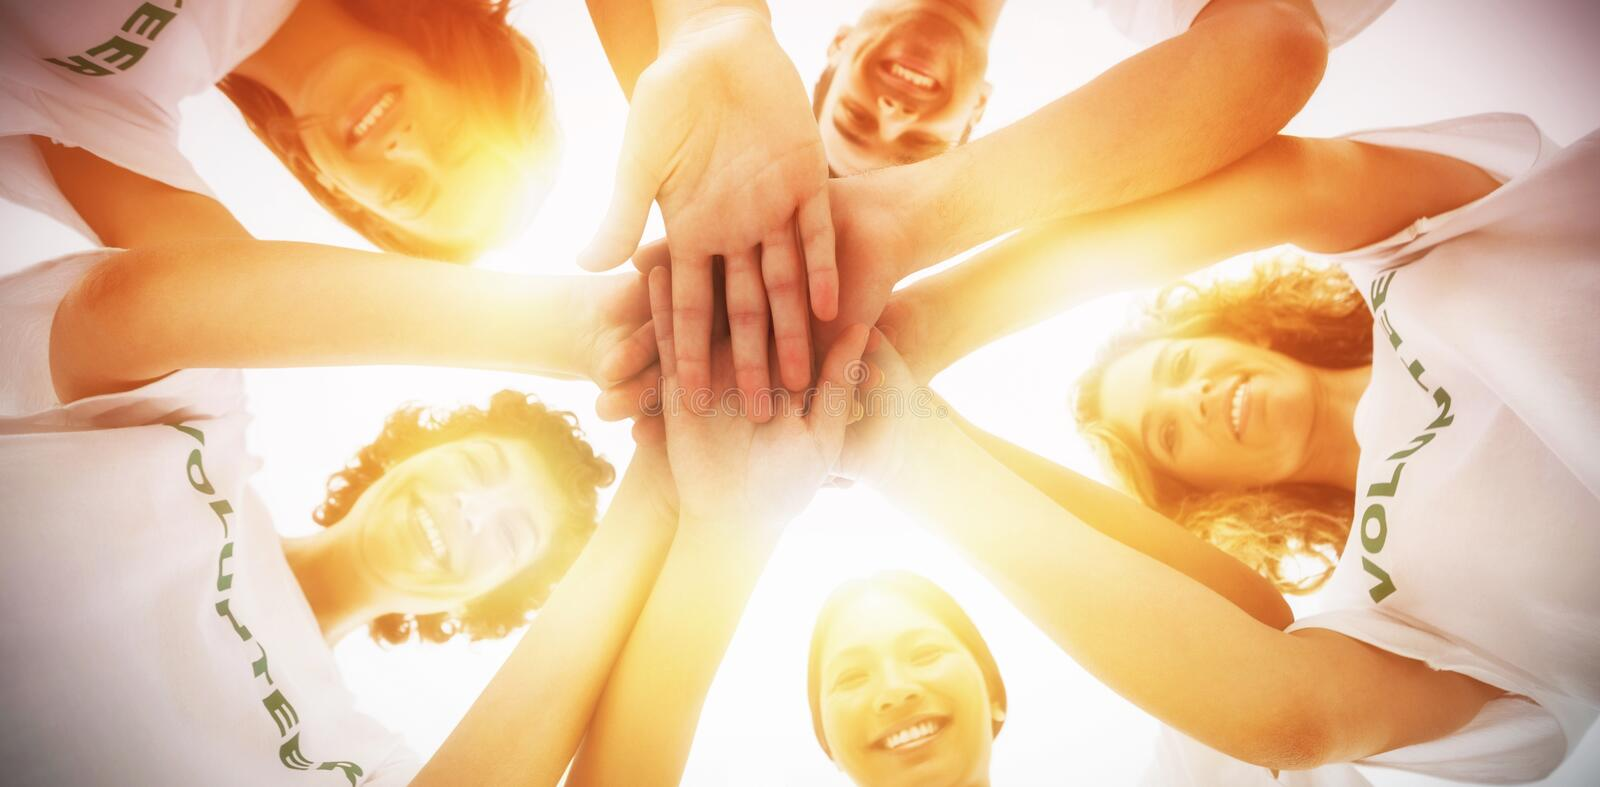 Cheerful group of volunteers putting hands together royalty free stock images